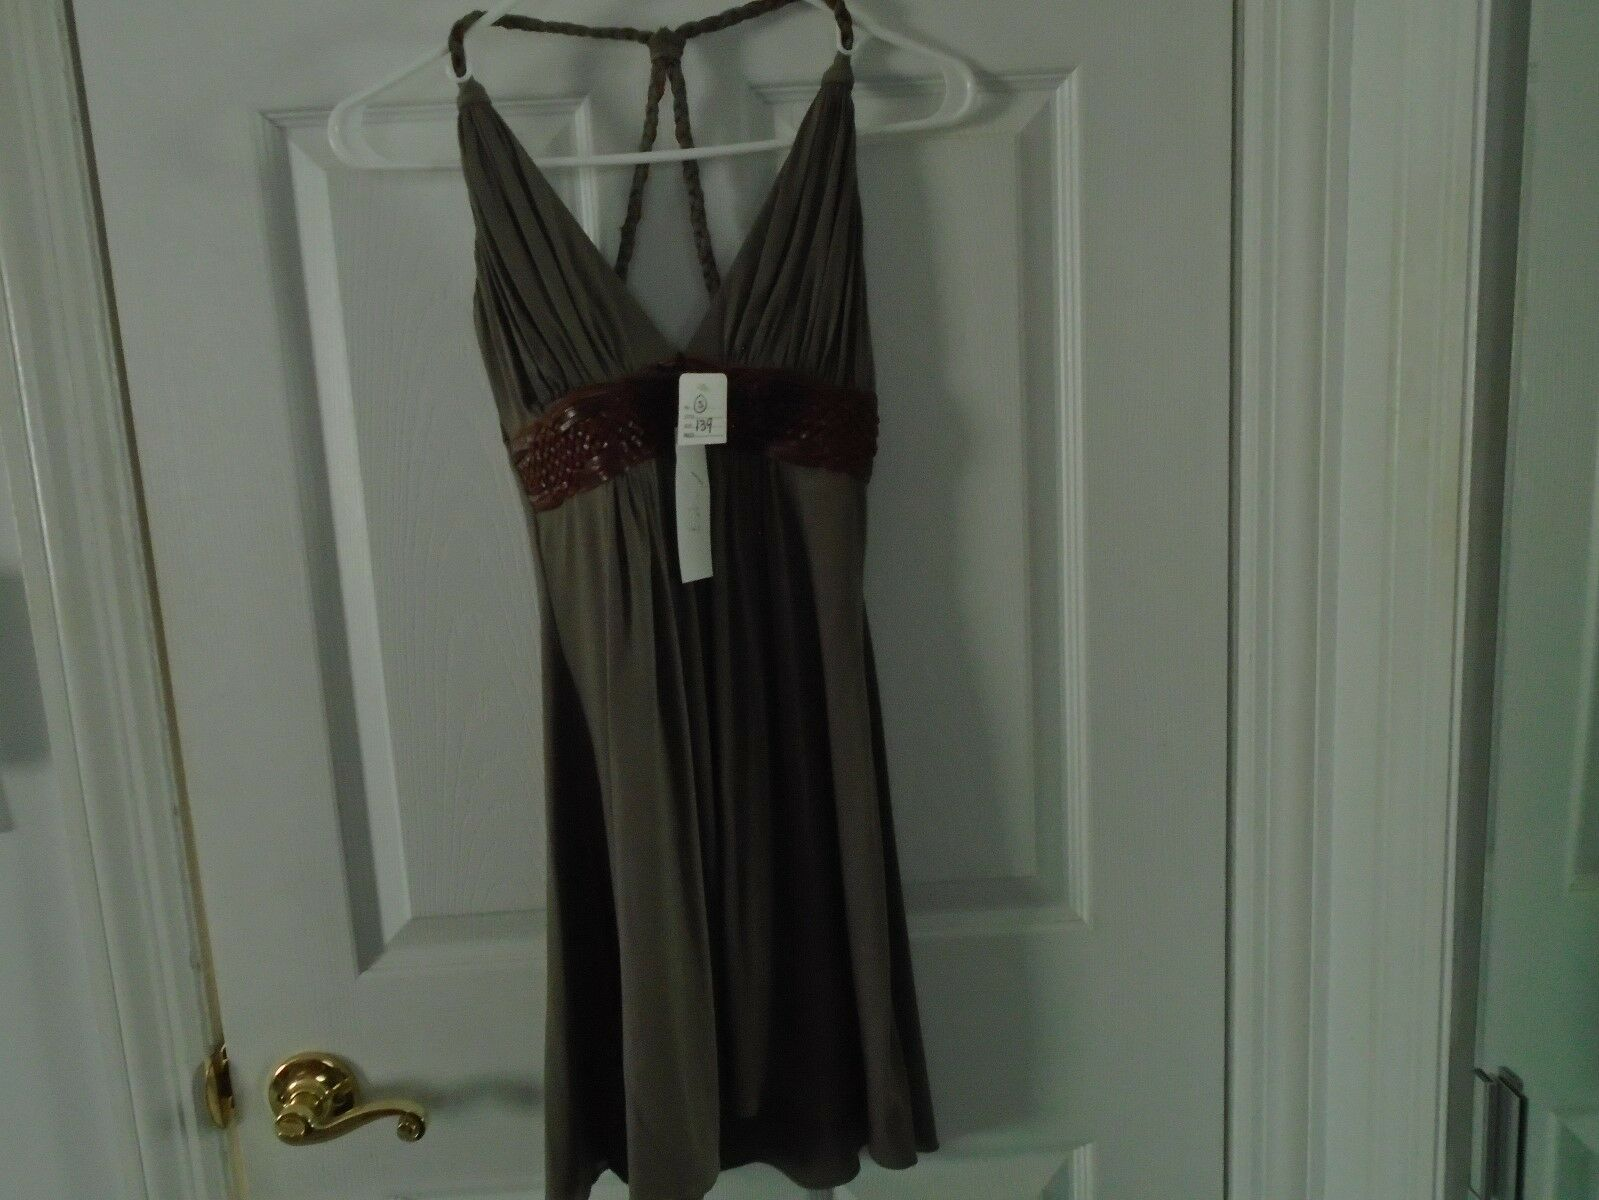 SKY Leather Trimmed Halter Top Size Small New With Tags